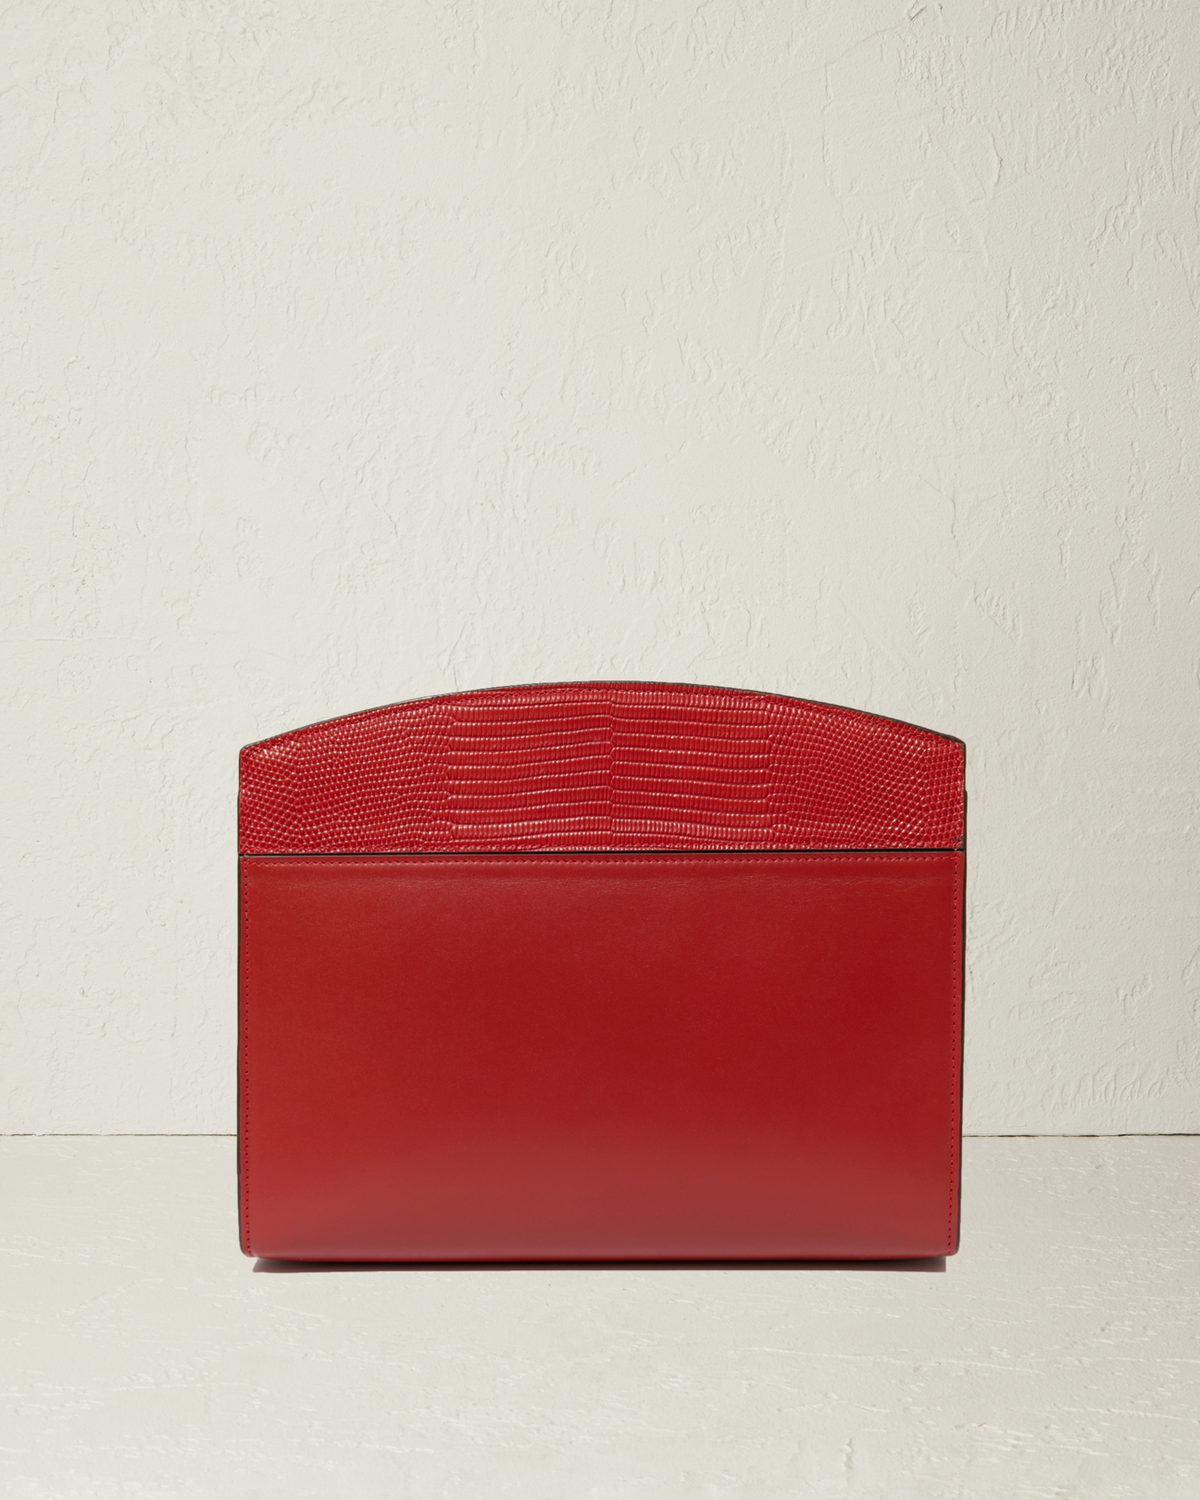 The Large Cosmetic Case